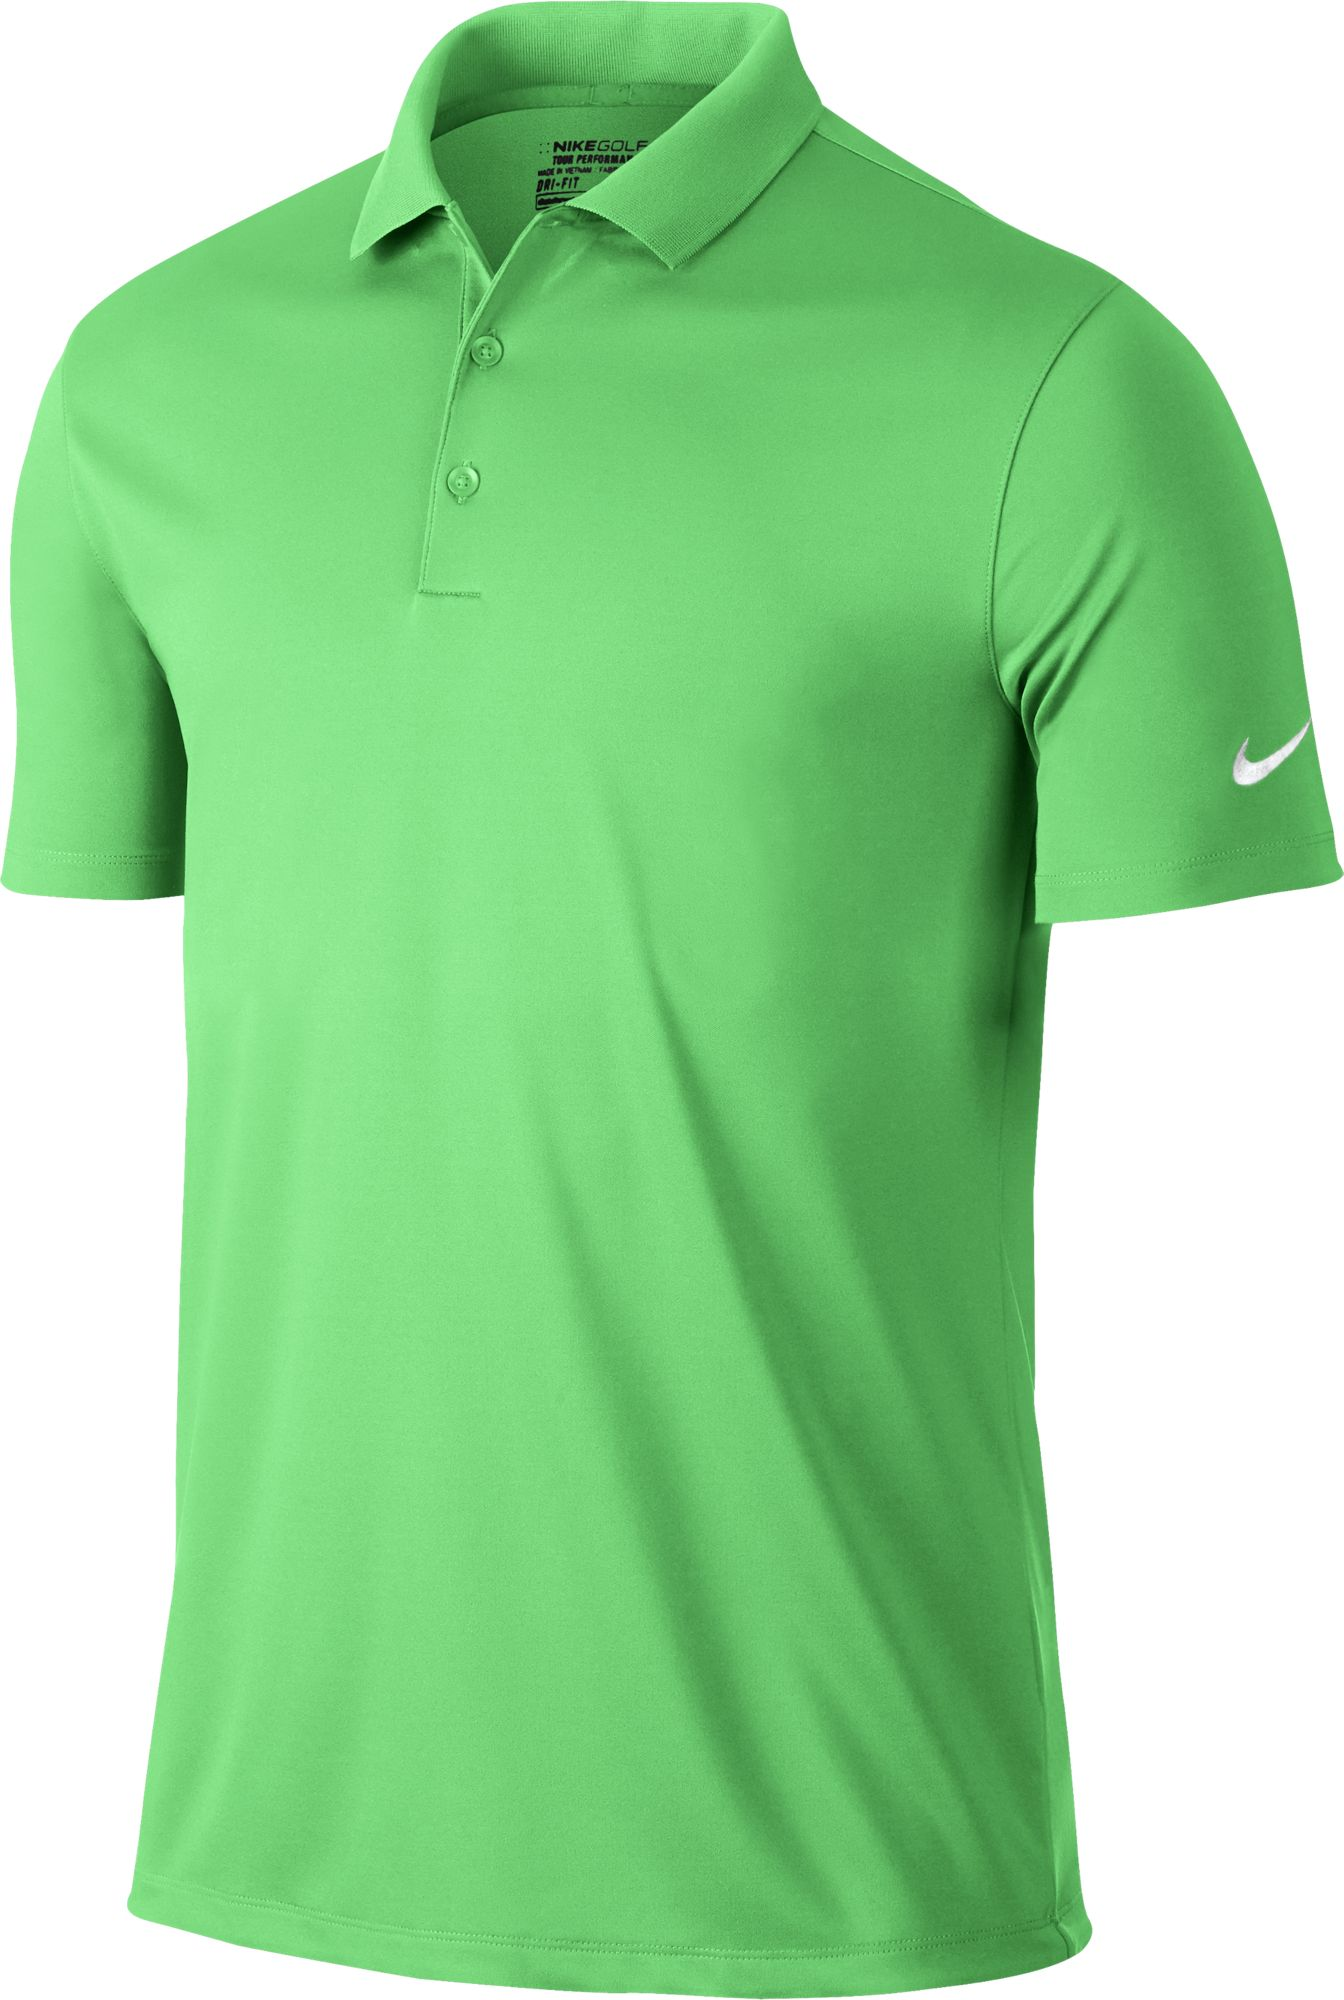 Nike Victory Solid Dri-Fit Polo Golf Shirt 725518 - Pick a ...